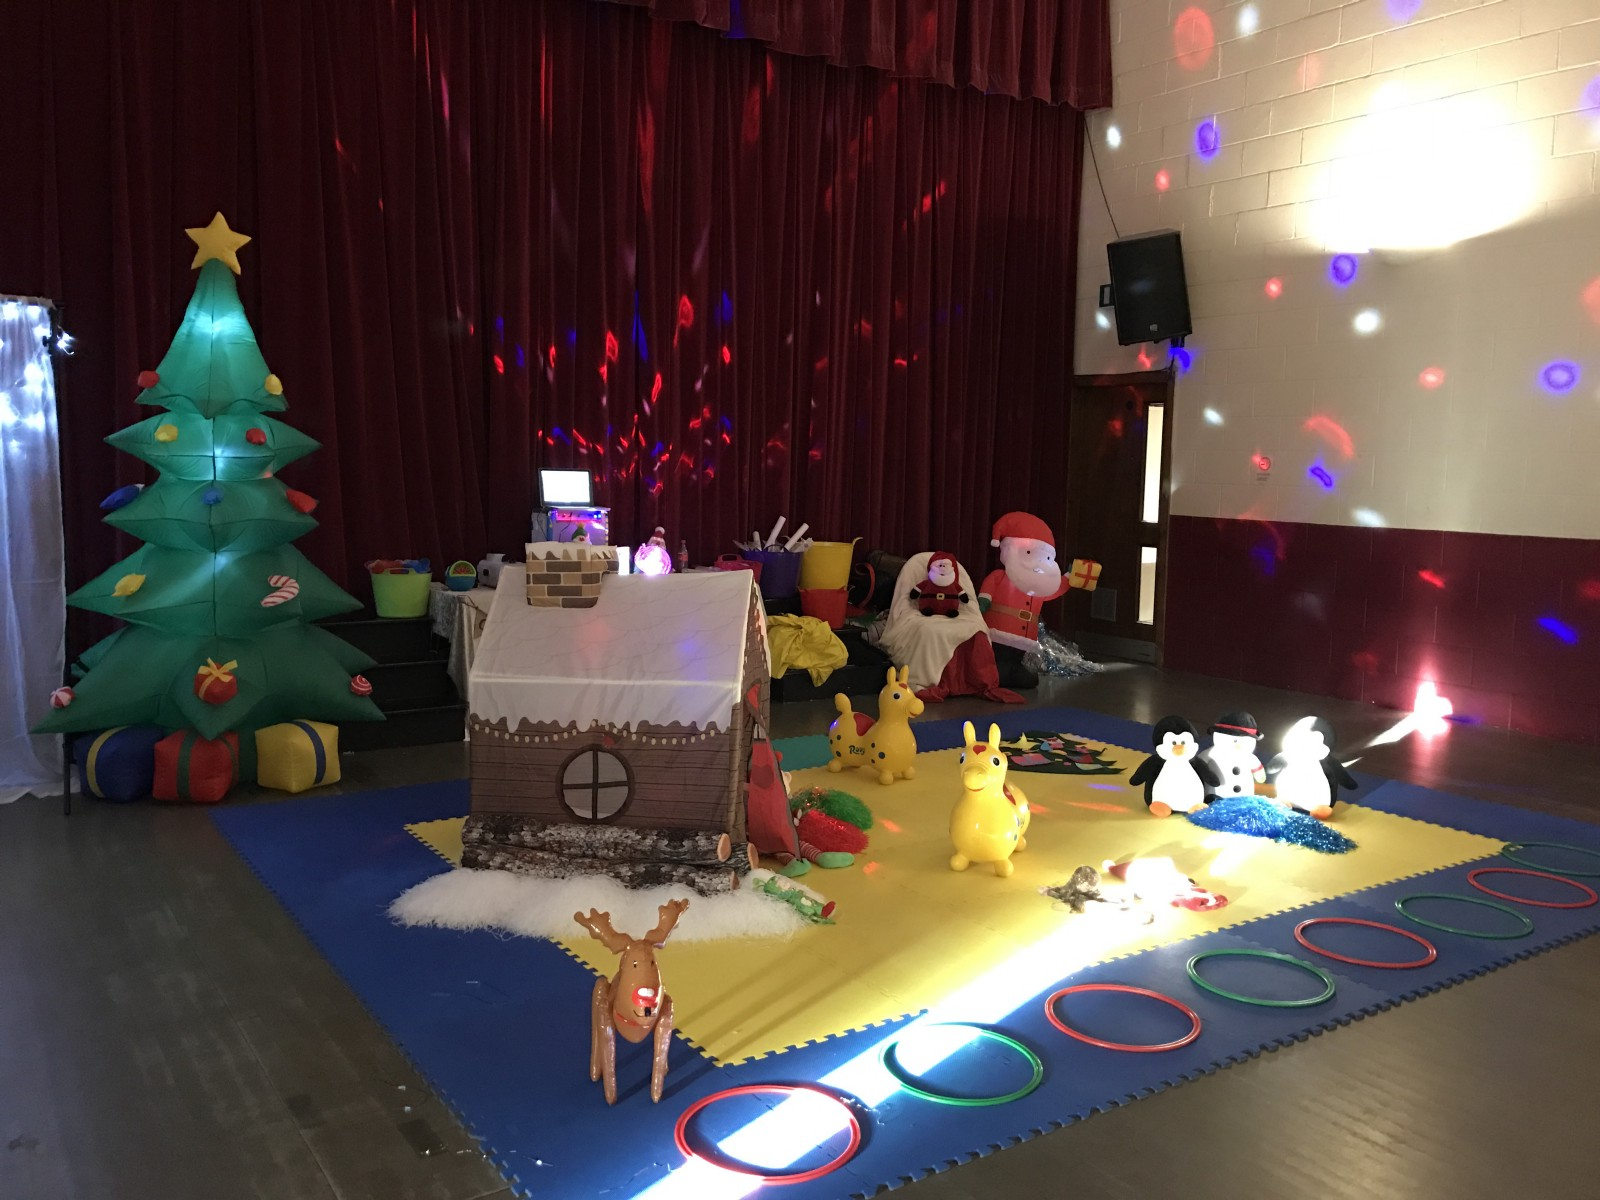 There Was Everything You Could Possibly Want For Kids Games At Christmas Time Snowmen Reindeers Awesome Light Displays Glowing Stars Bells